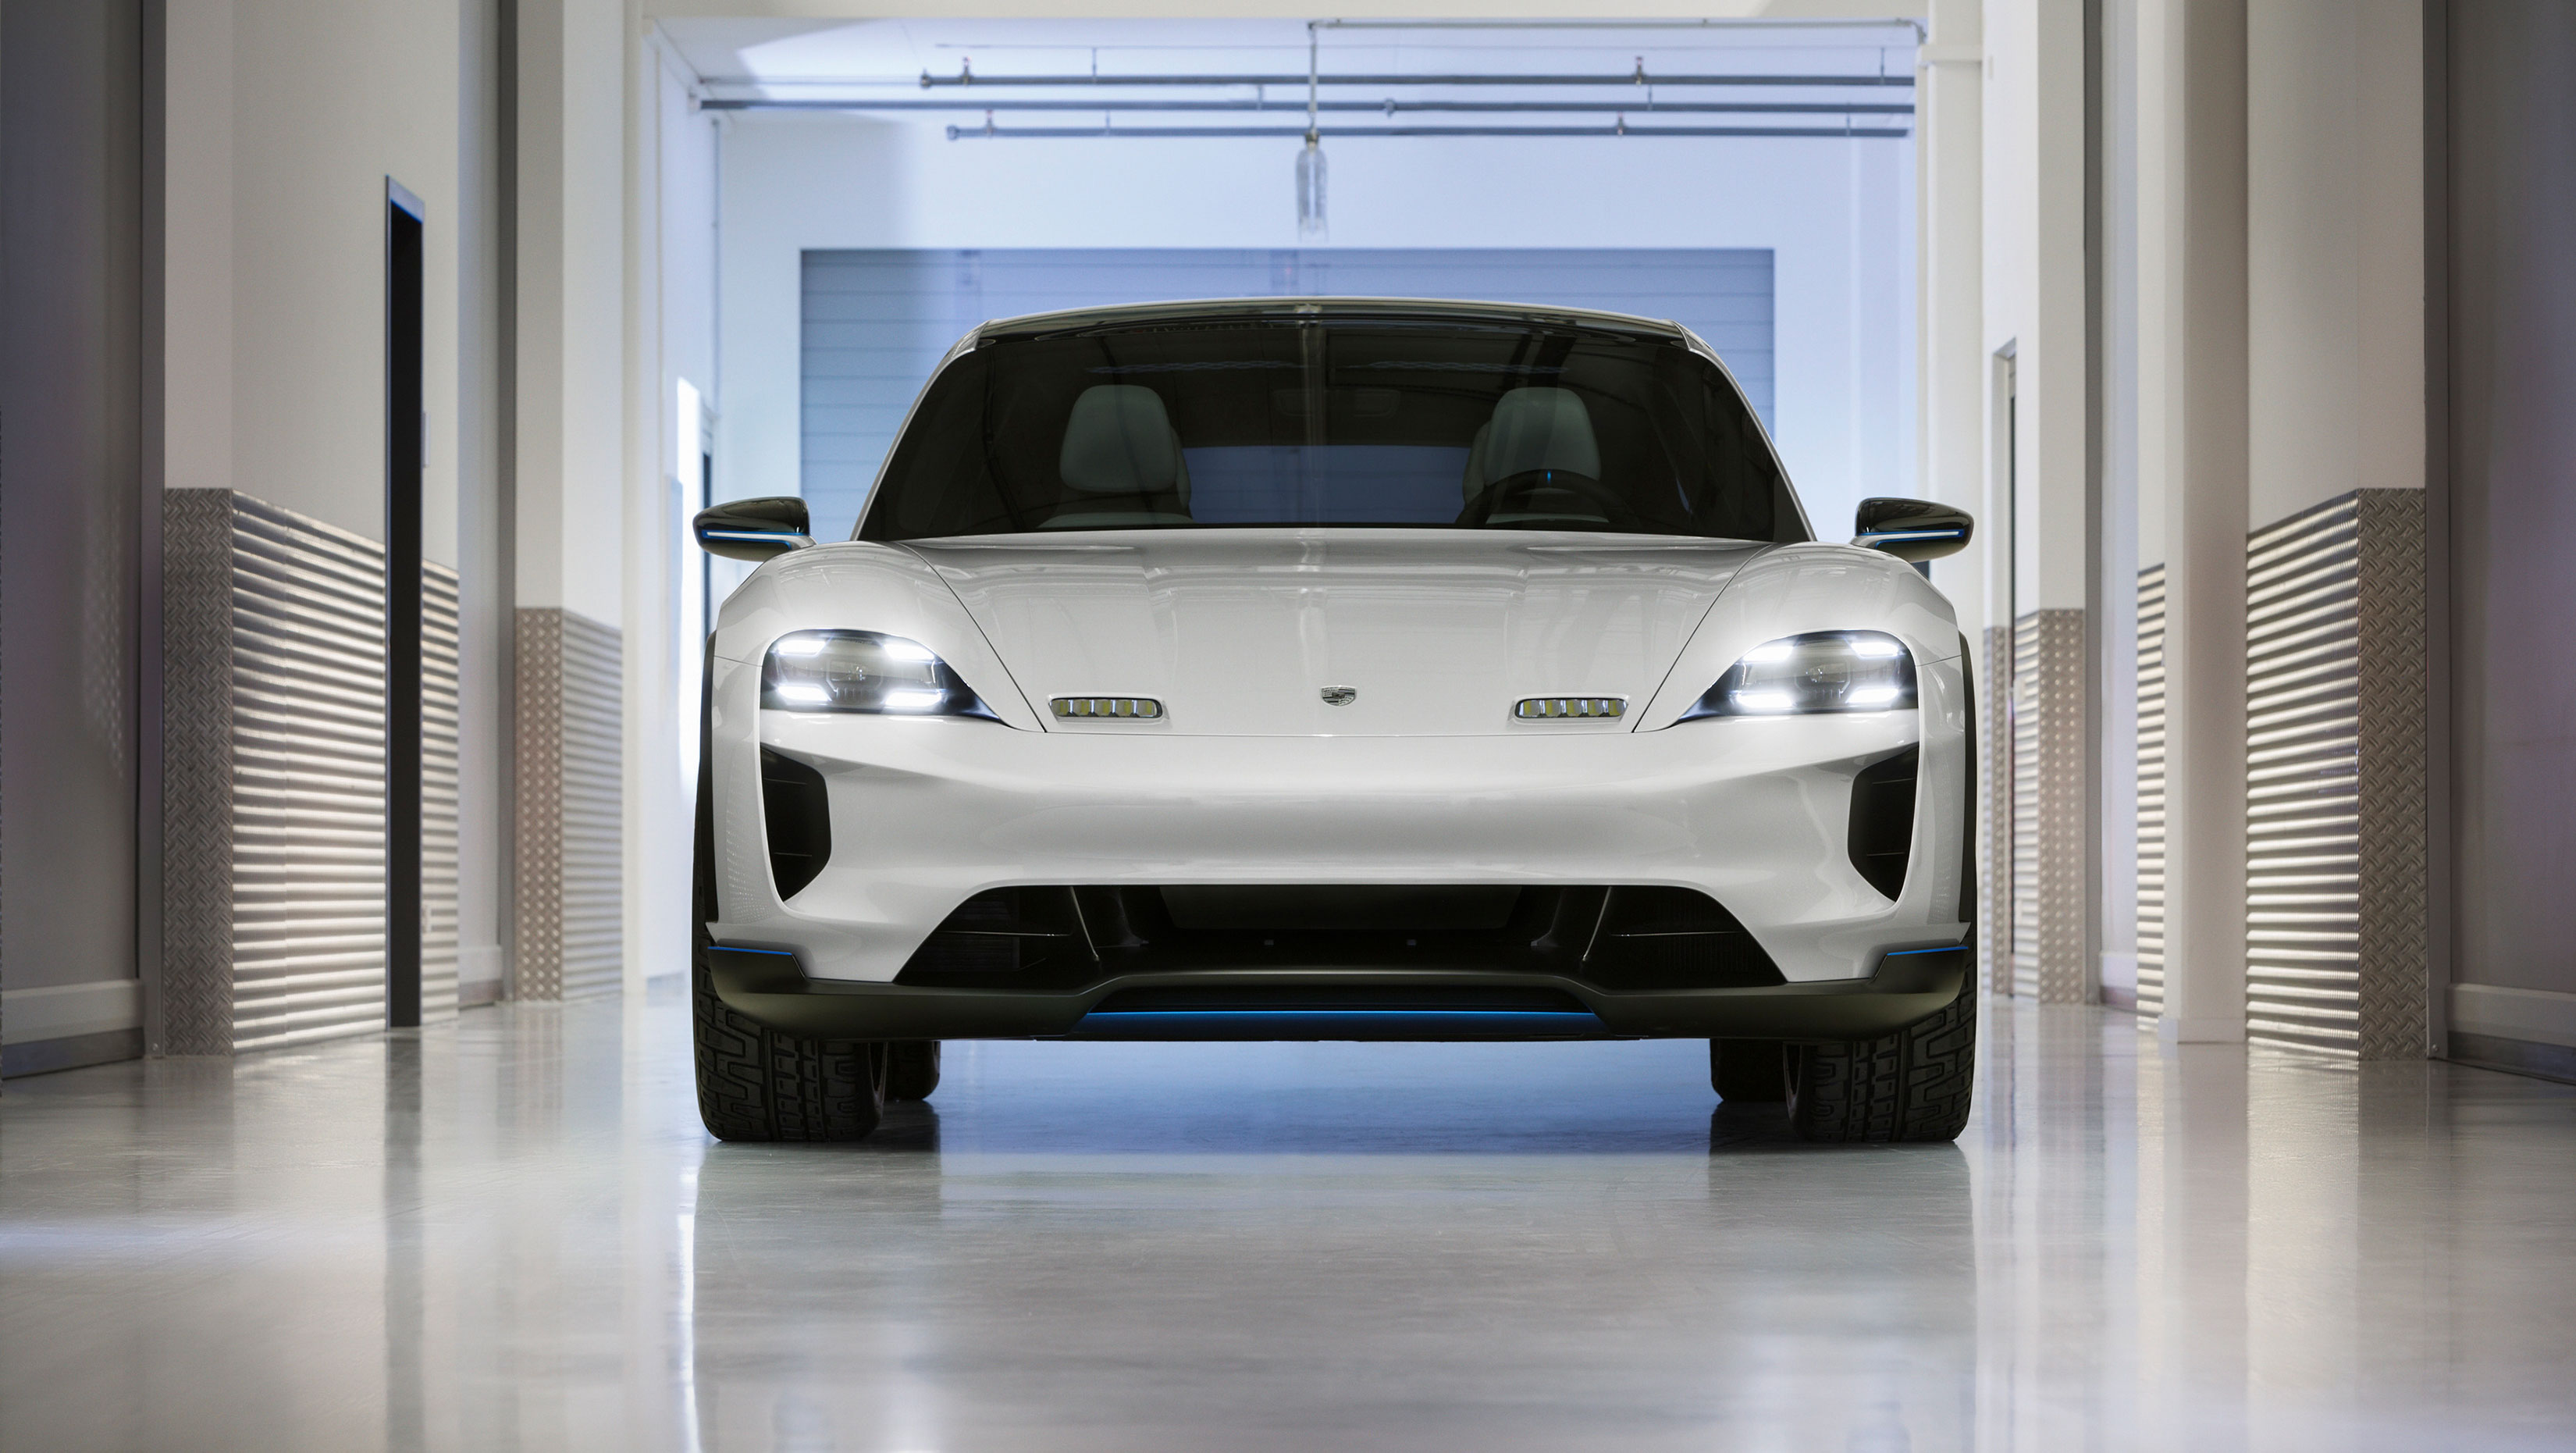 Porsche's Electric Vehicle Plans